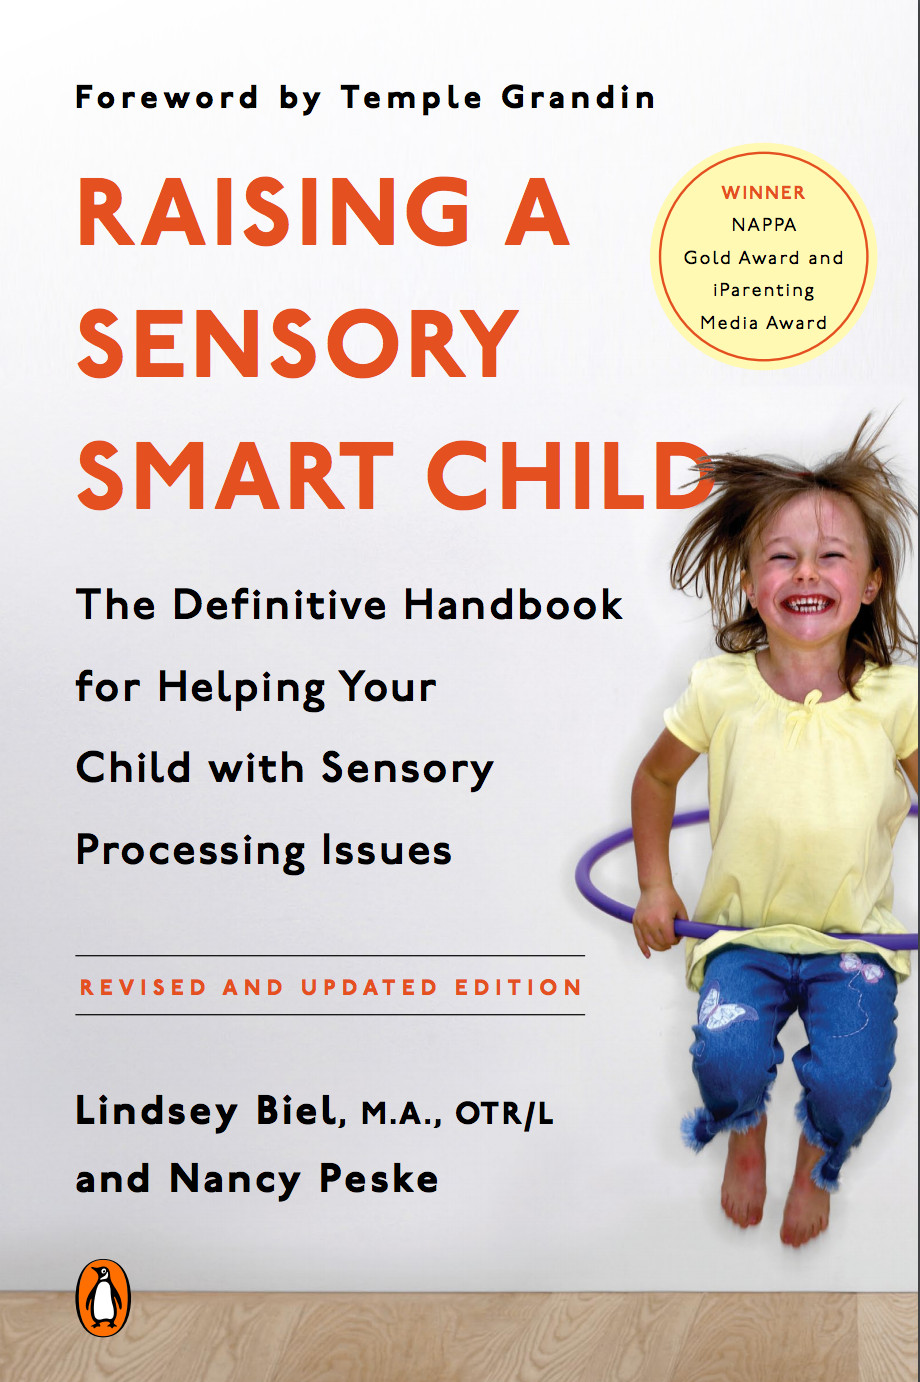 Raising a Sensory Smart Child Nancy Peske Lindsey Biel